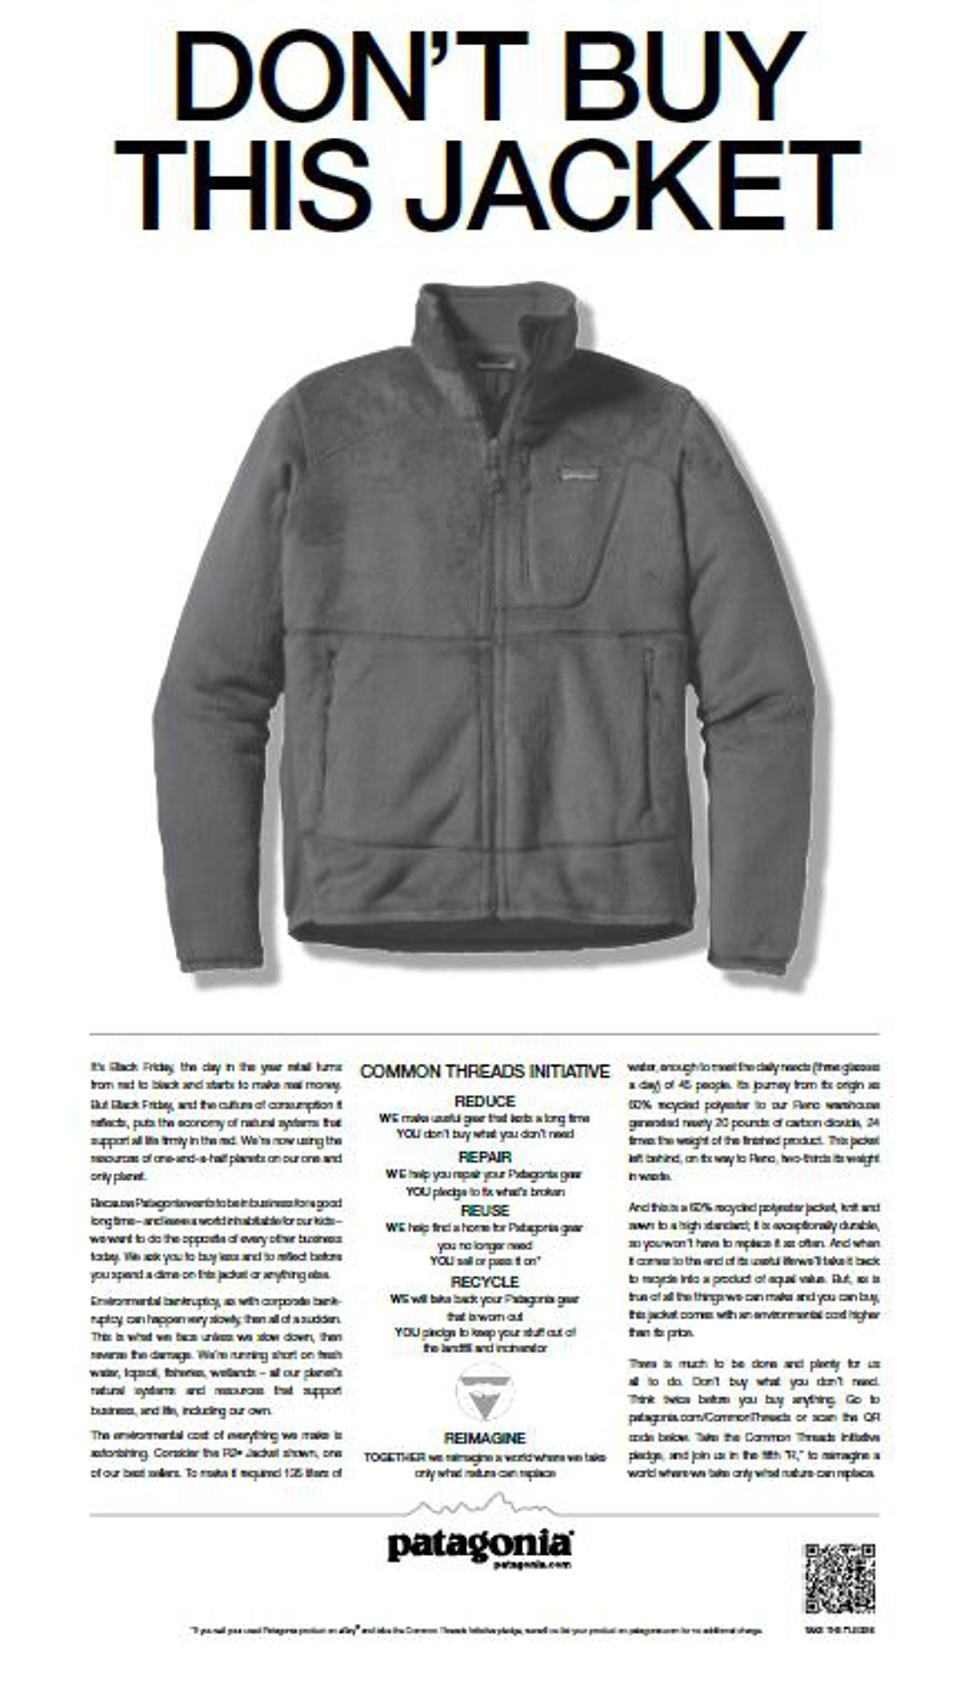 Patagonia's famous Don't Buy This Jacket campaign, encouraging people to buy less.